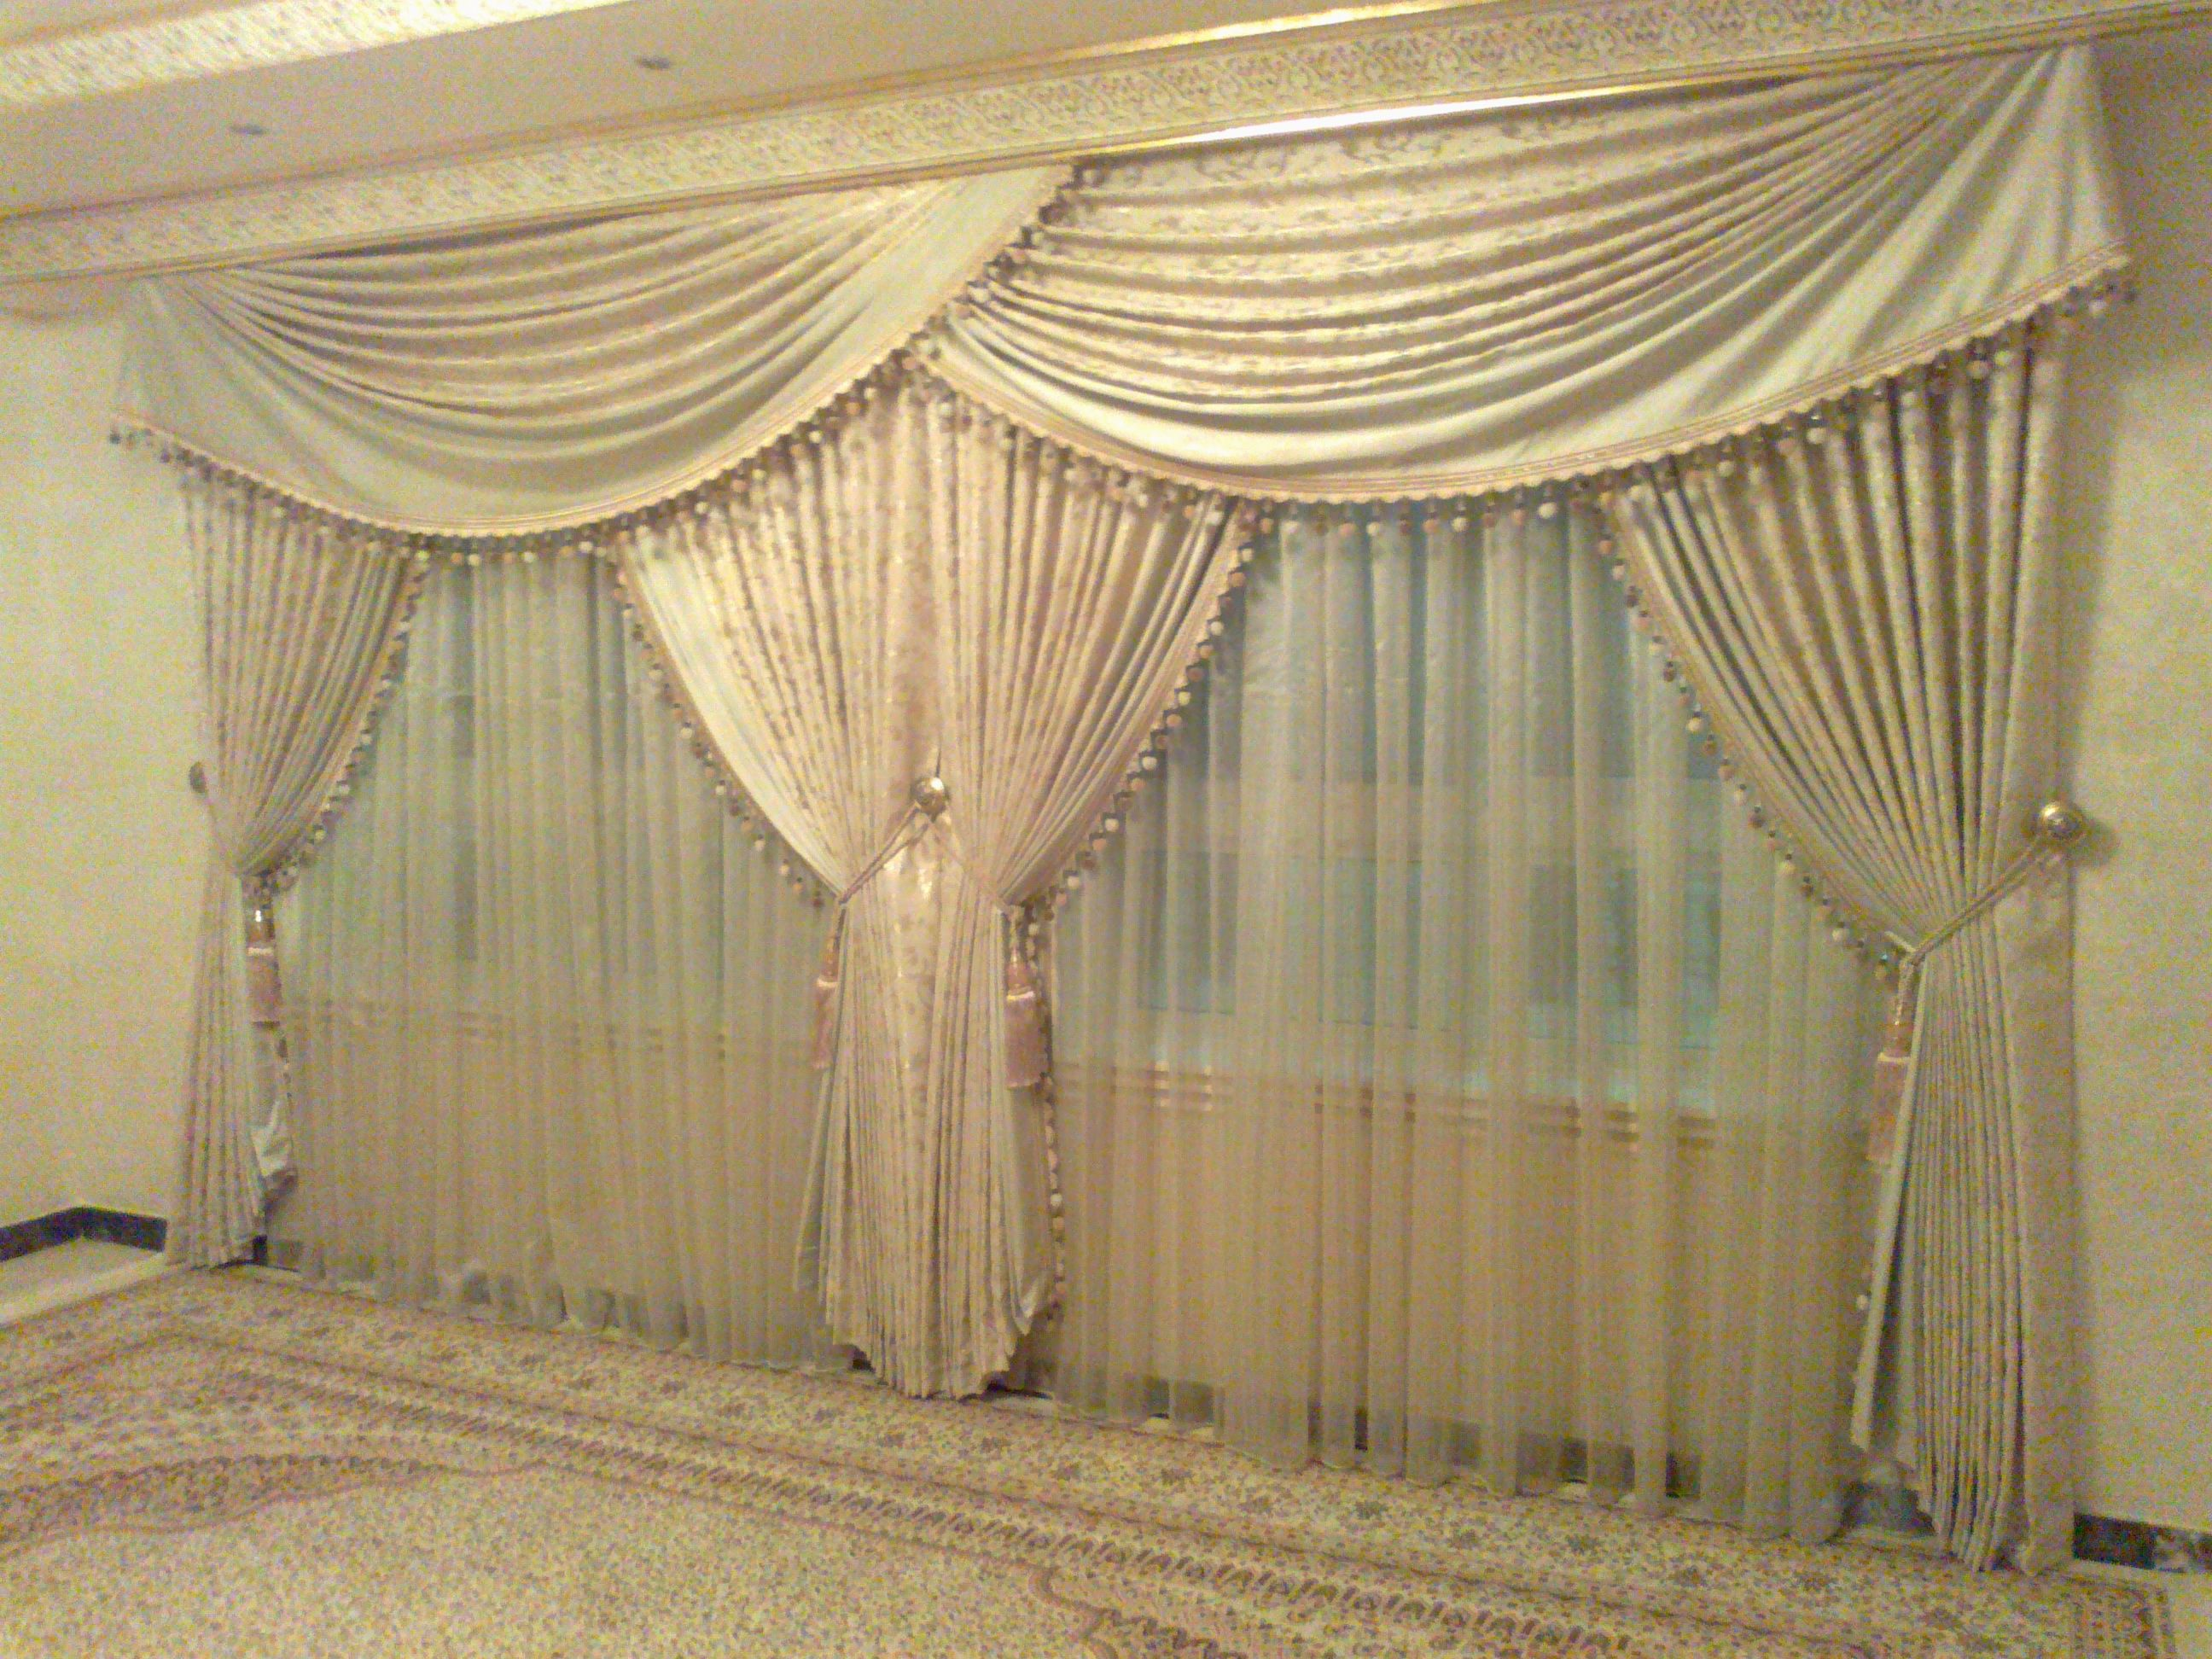 Curtain Designed For The Dining Room Or Banquet Hall In Front We Have Two Types Of Satin The First One Of Beige Plain And Th Curtain Designs Curtains Dining